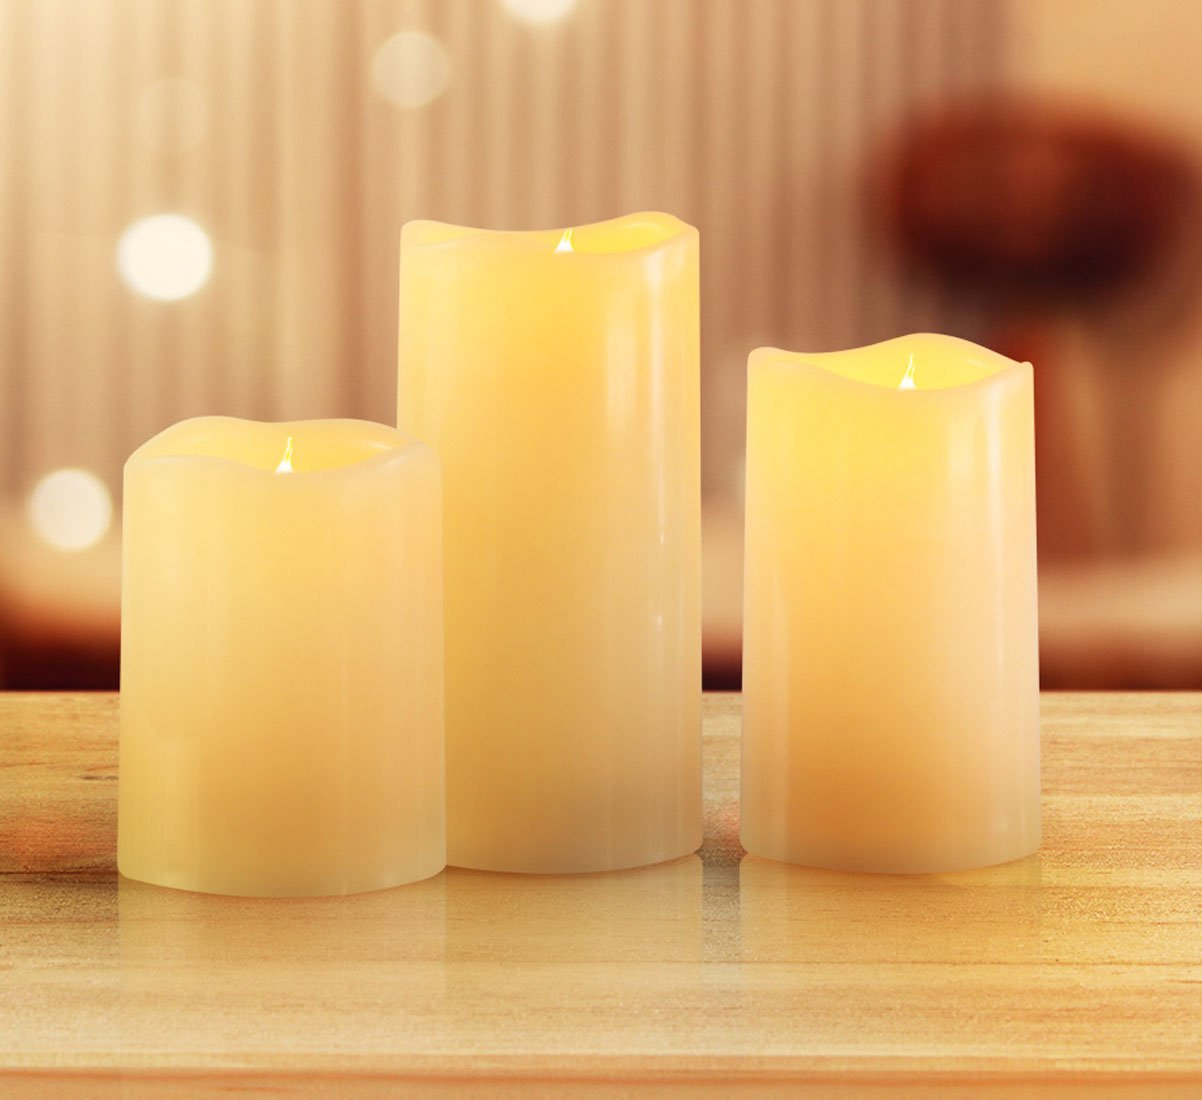 KMSdeco Outdoor Waterproof LED Candles Indoor Home Decor Battery Operated Flameless Candles with Timer Set of 3 456 Ivory